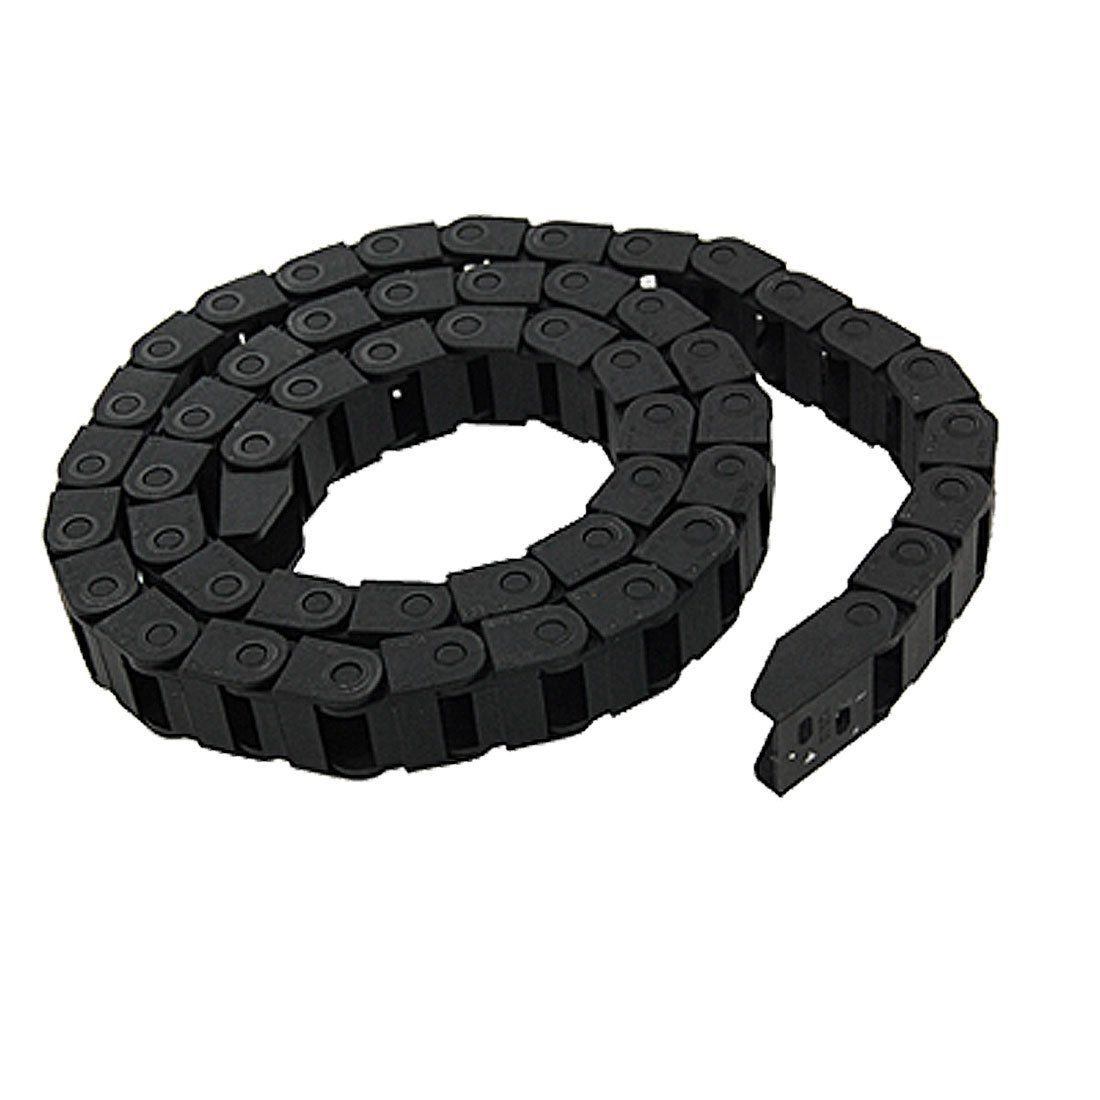 10 x 20 mm Black Plastic Drag Chain Cable Carrier For CNC Router Mill 3D Printer